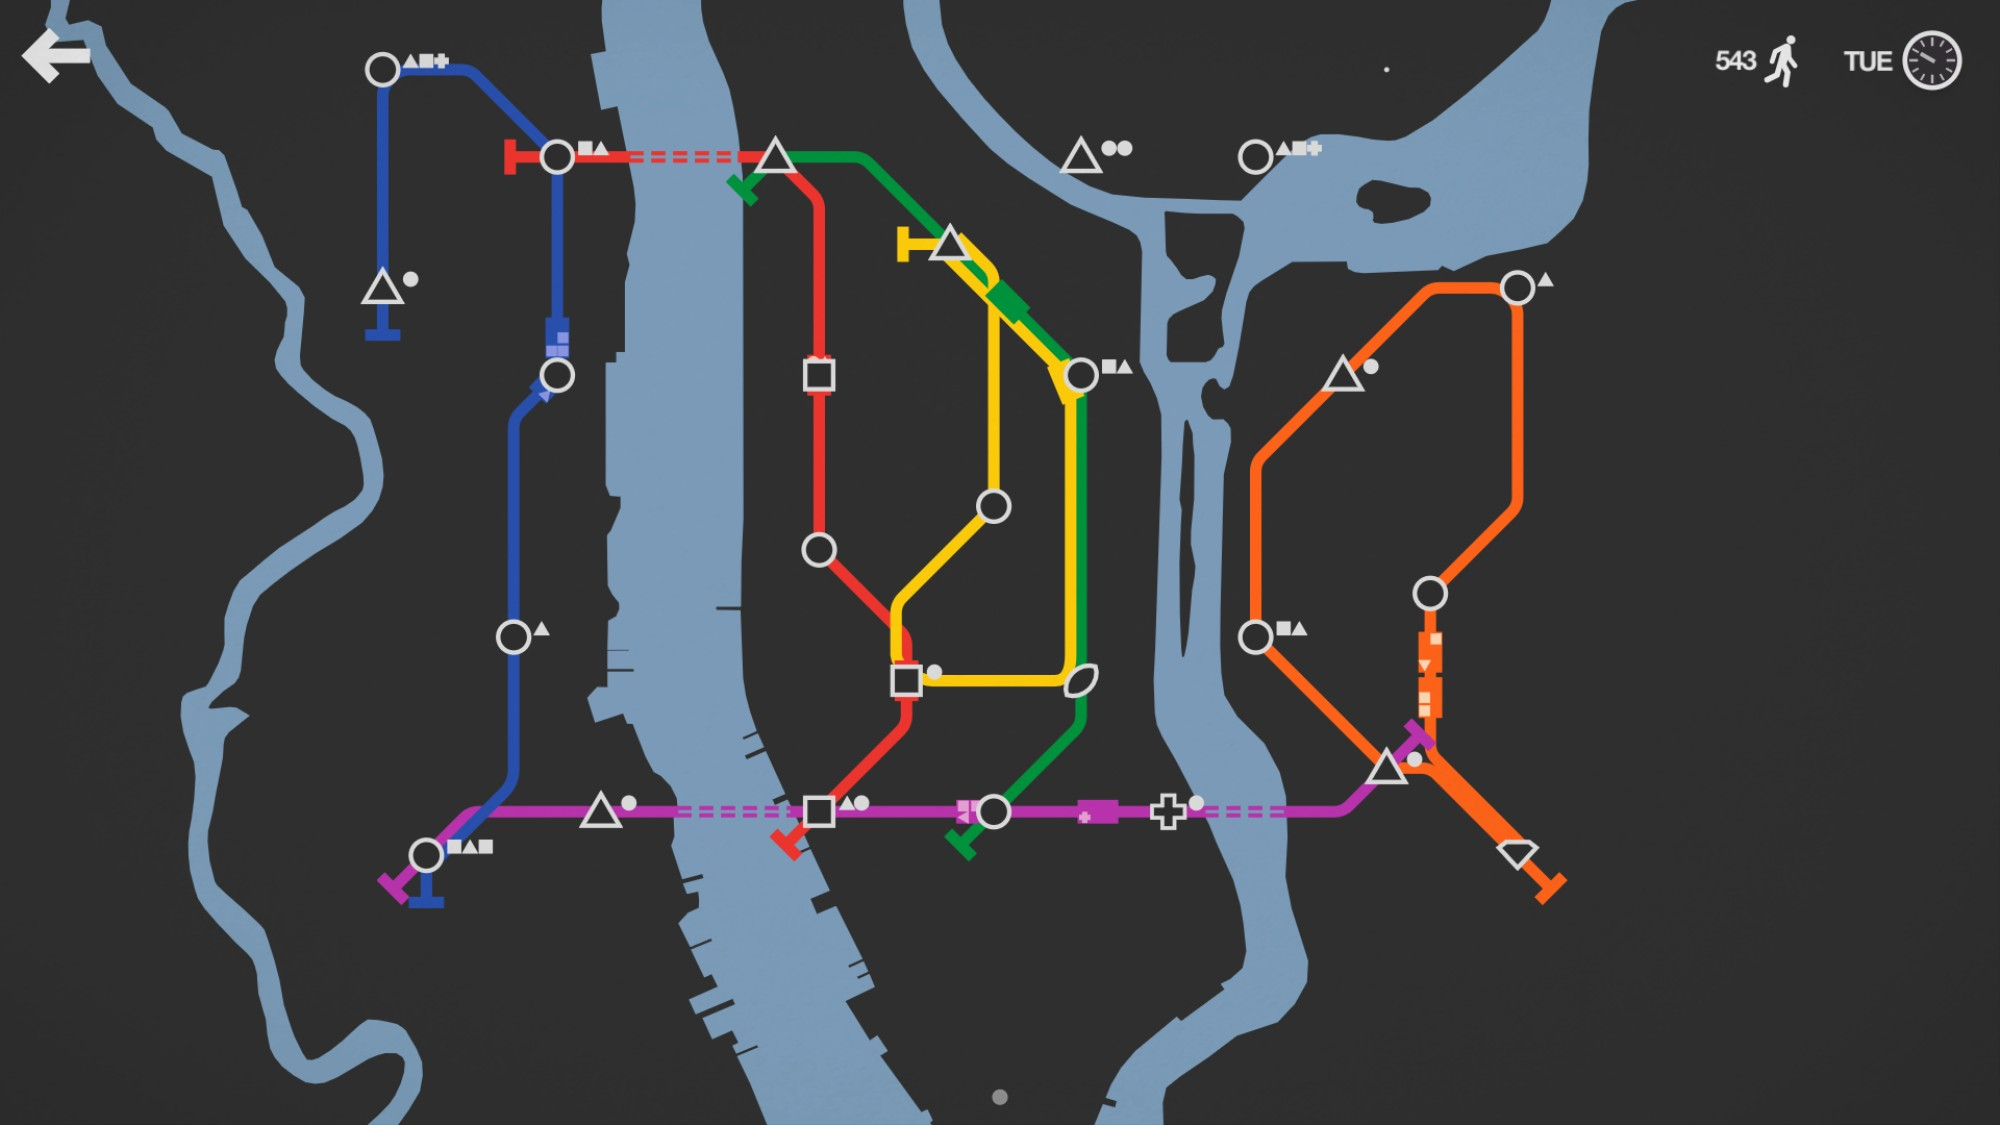 Custom Subway Map Creator.We Asked A Transit Planner How To Up Our Mini Metro Game Vice